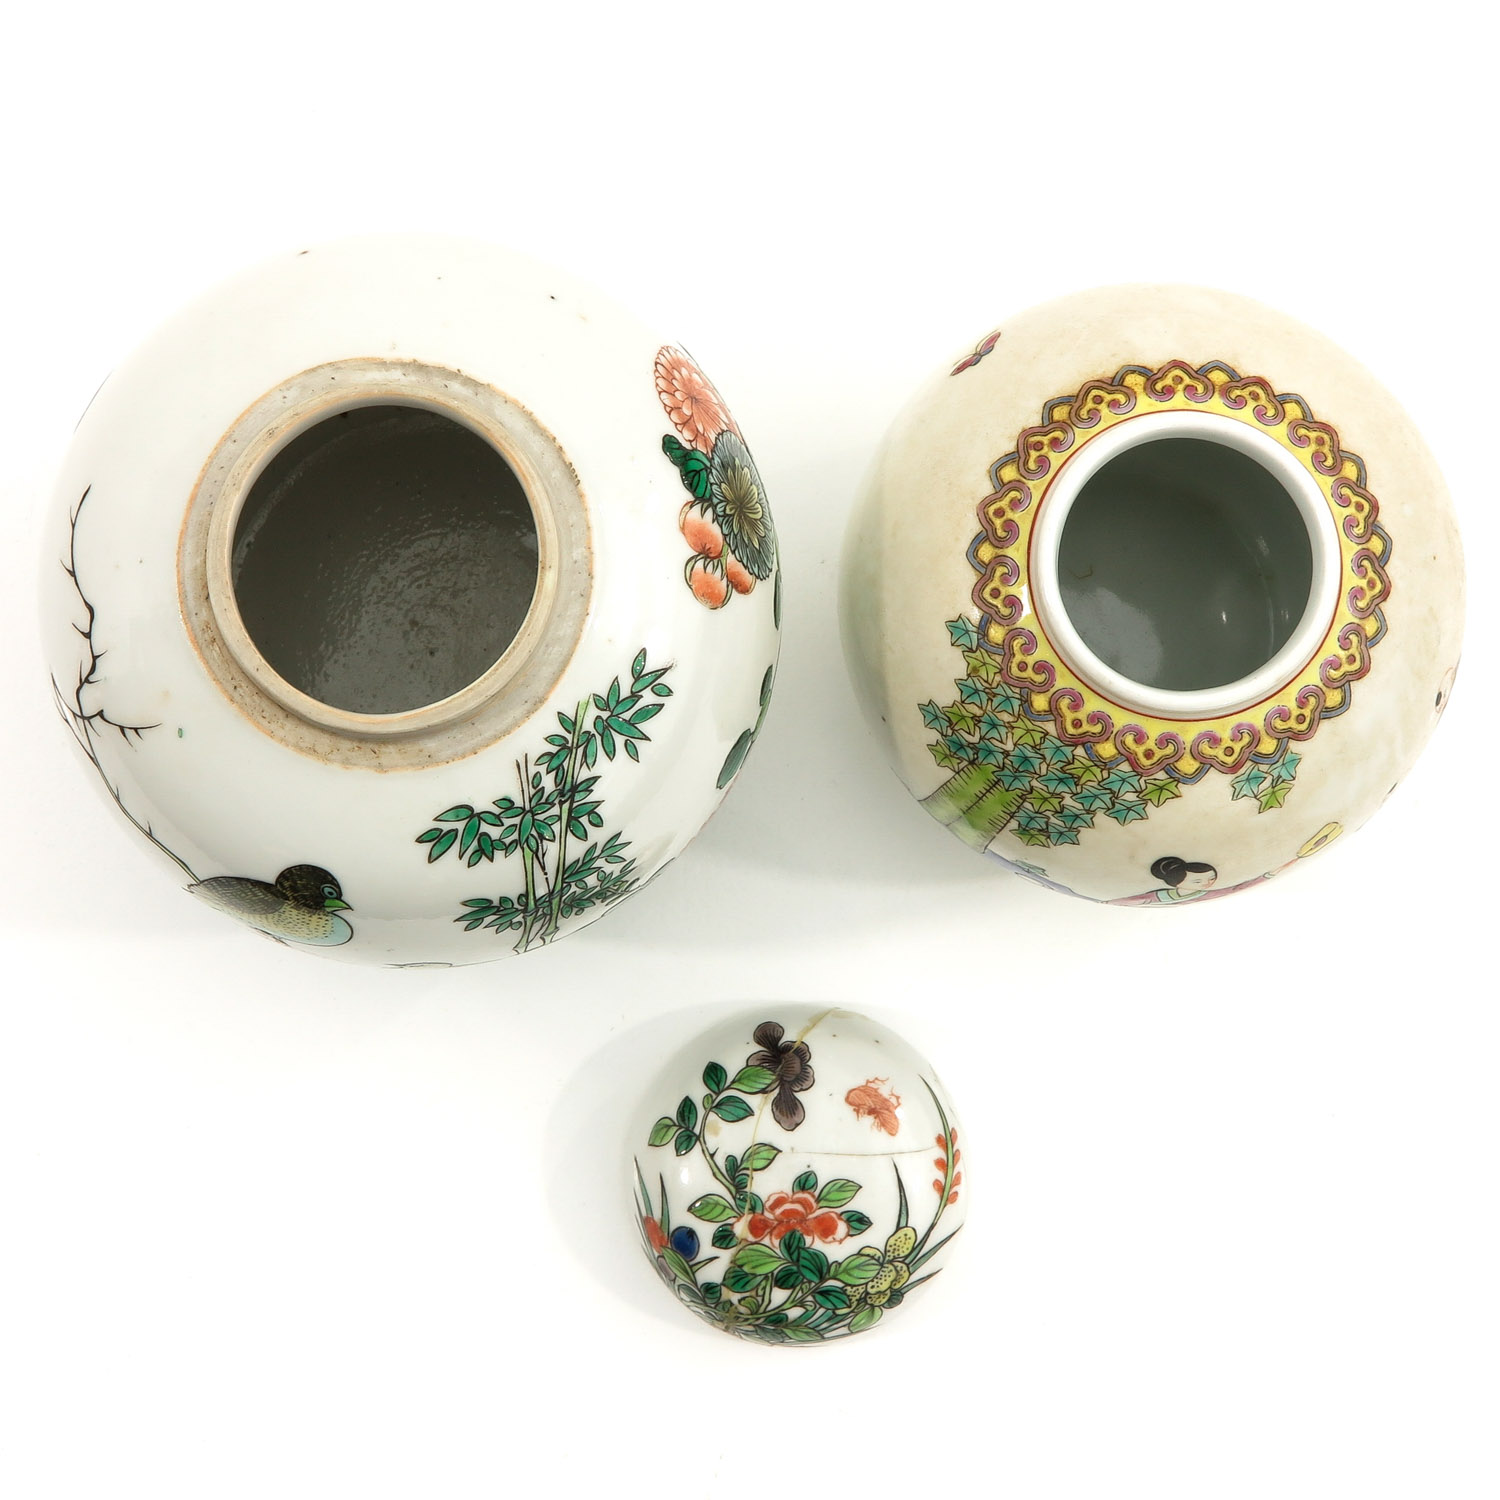 A Lot of 2 Ginger Jars - Image 5 of 9